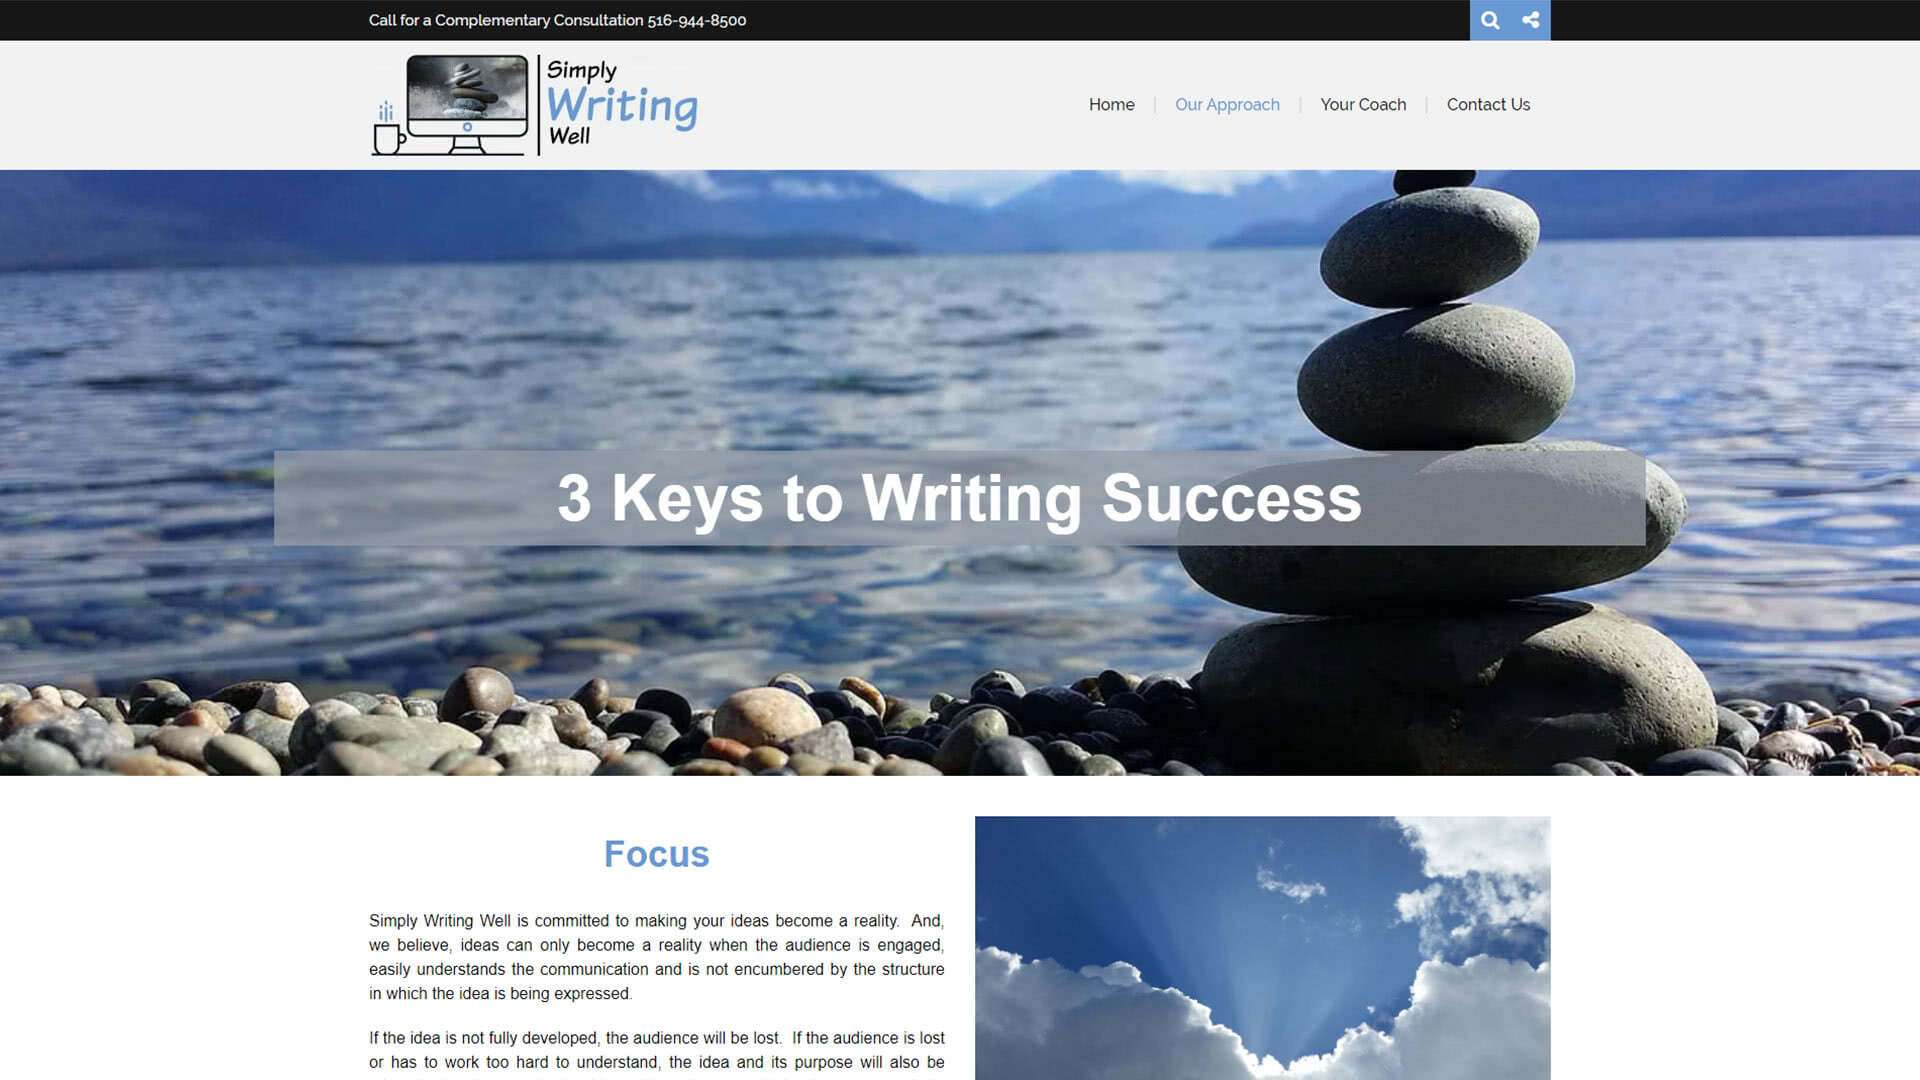 simply-writing-well-our-approach